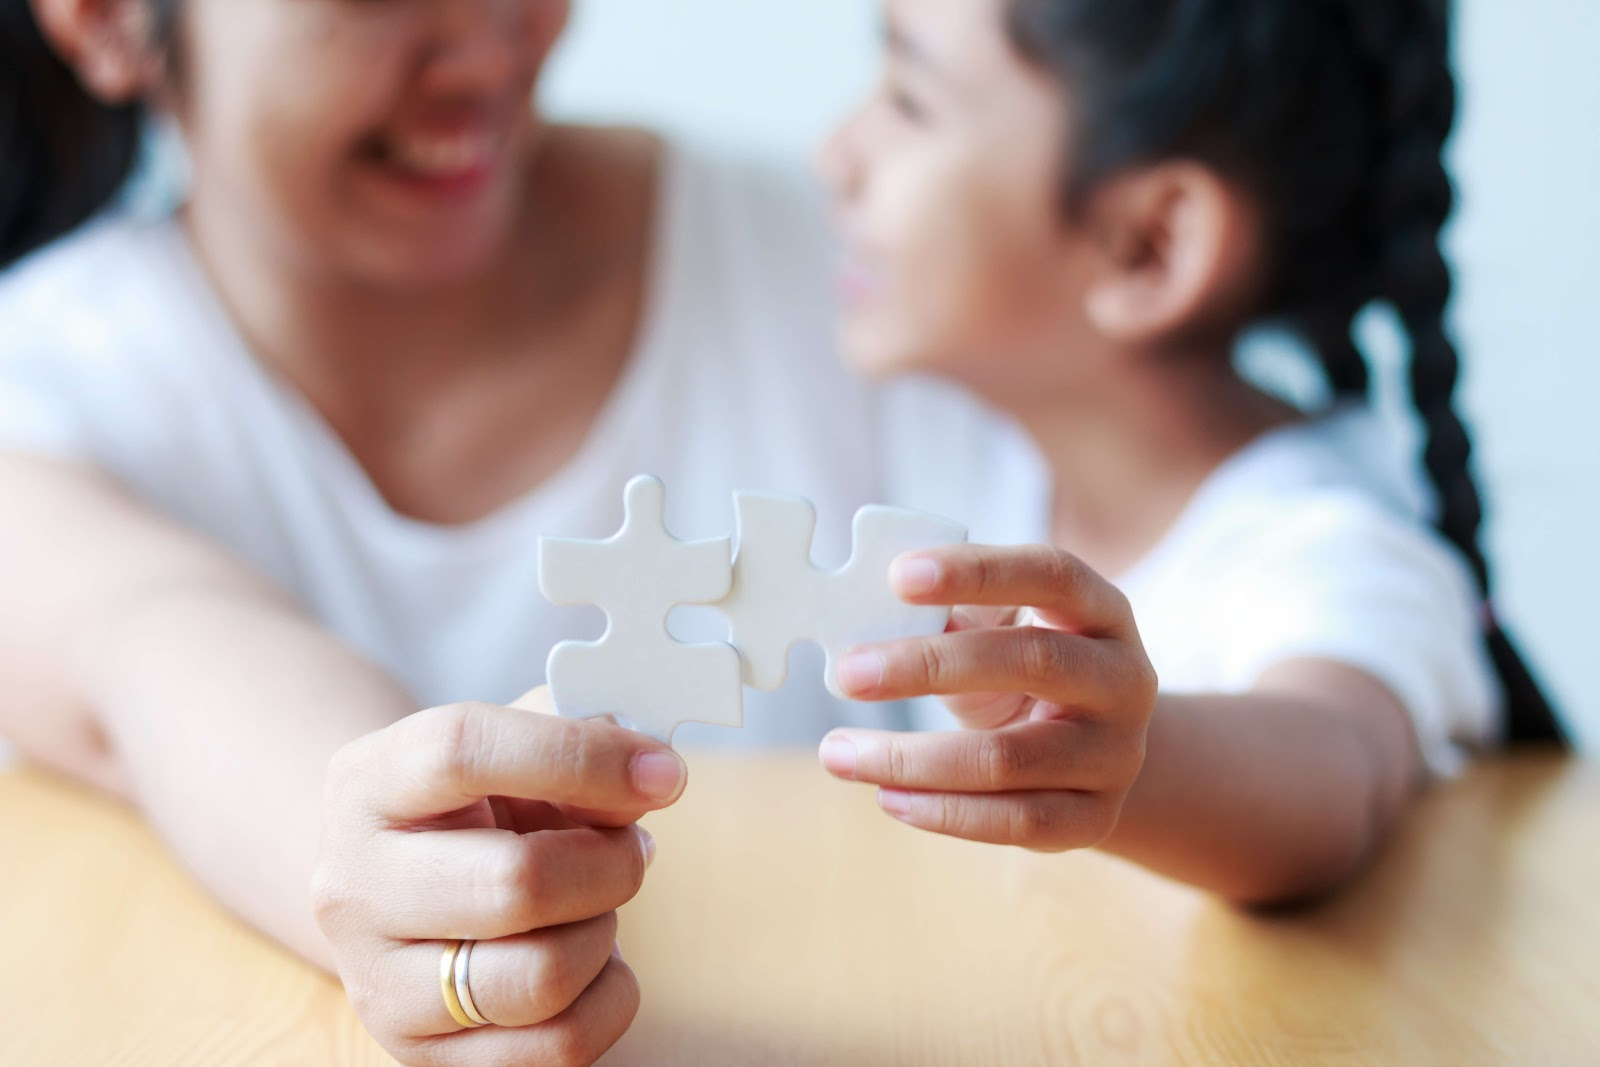 A parent and child holding two puzzle pieces that don't fit together